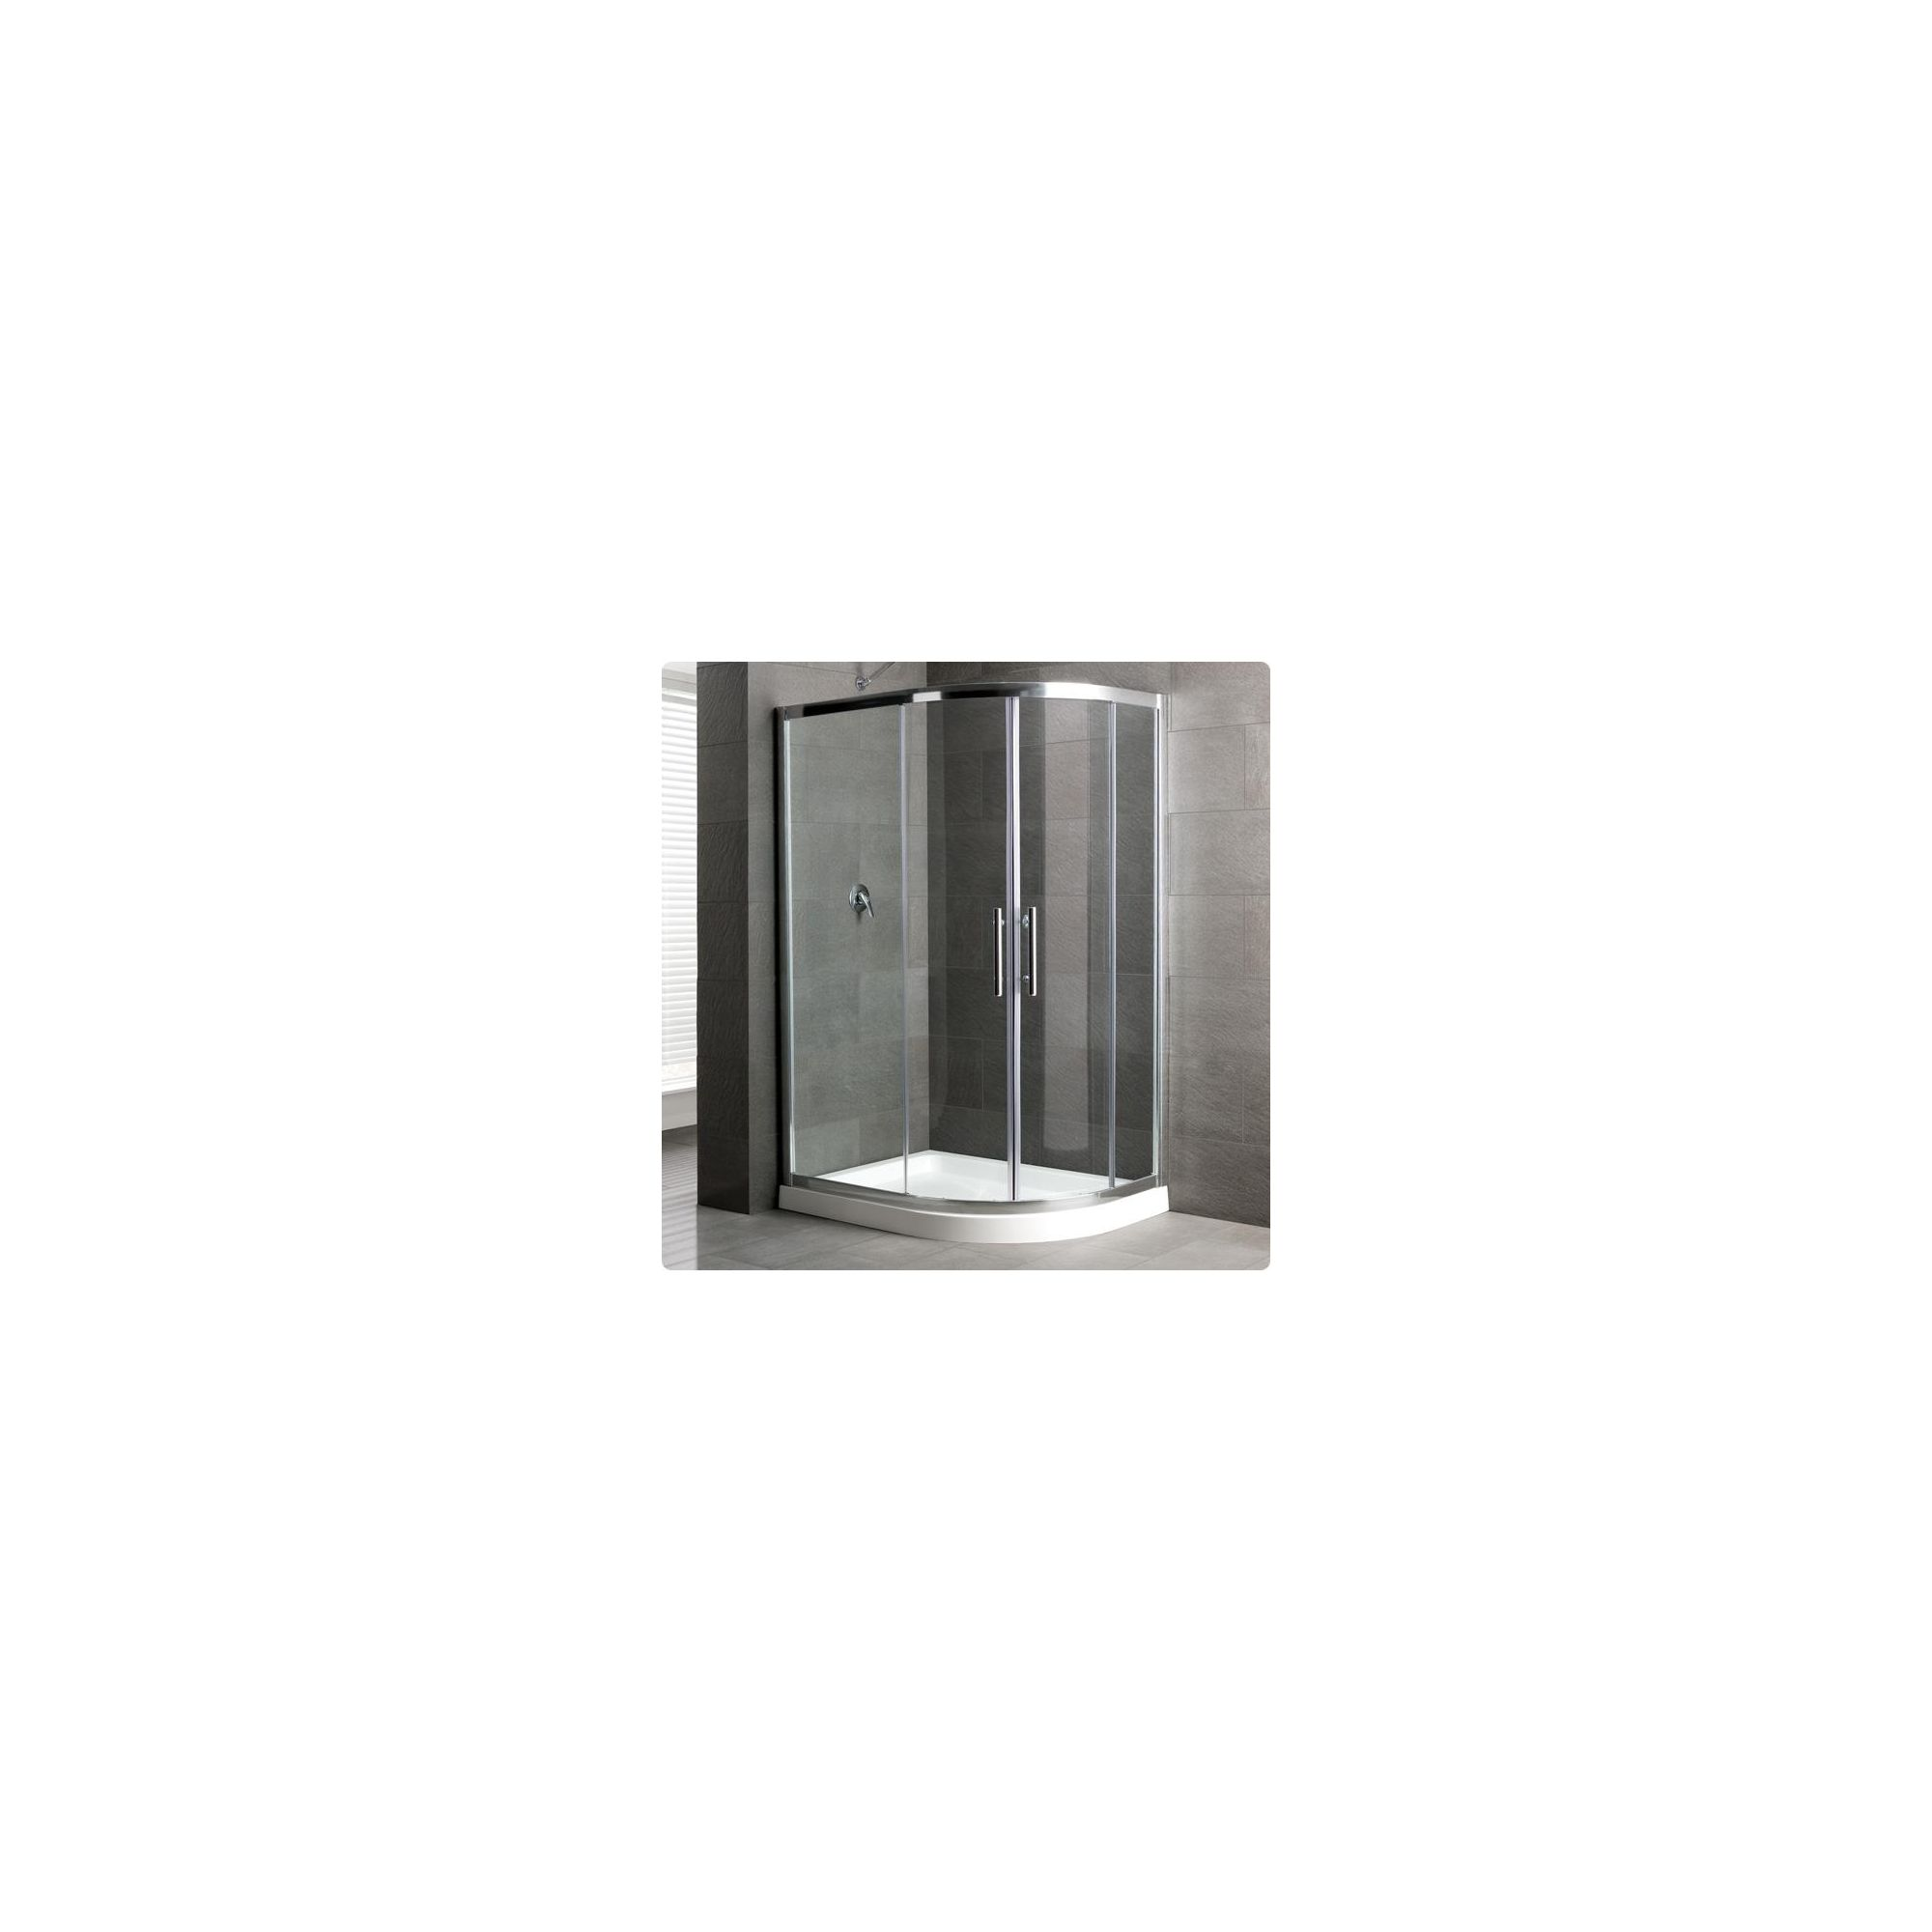 Duchy Select Silver 2 Door Offset Quadrant Shower Enclosure 1000mm x 900mm, Standard Tray, 6mm Glass at Tesco Direct